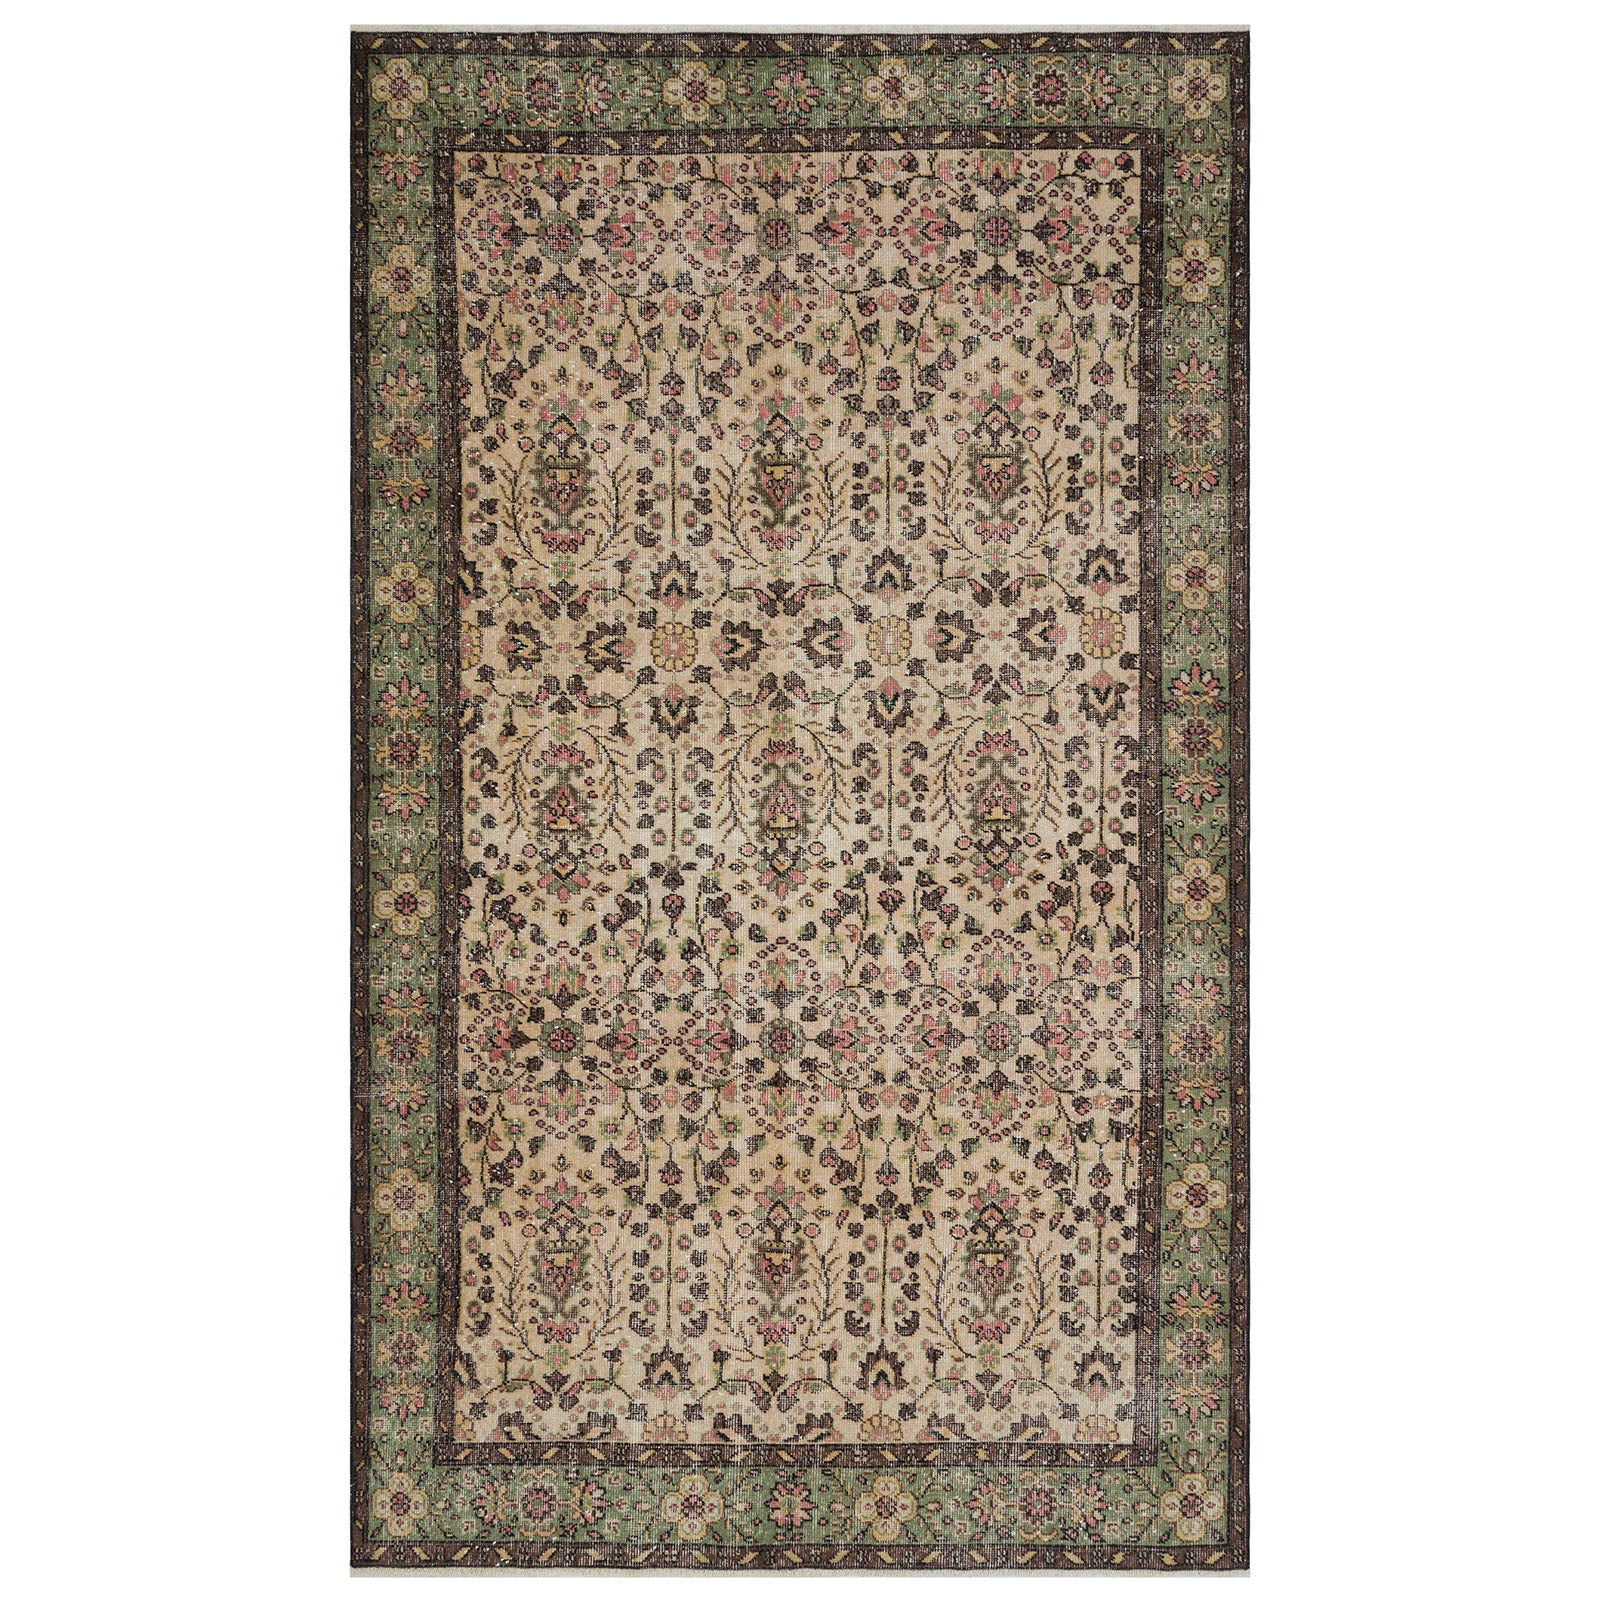 Hali 174X294 CM Bursa Handmade over dyed rug 1807